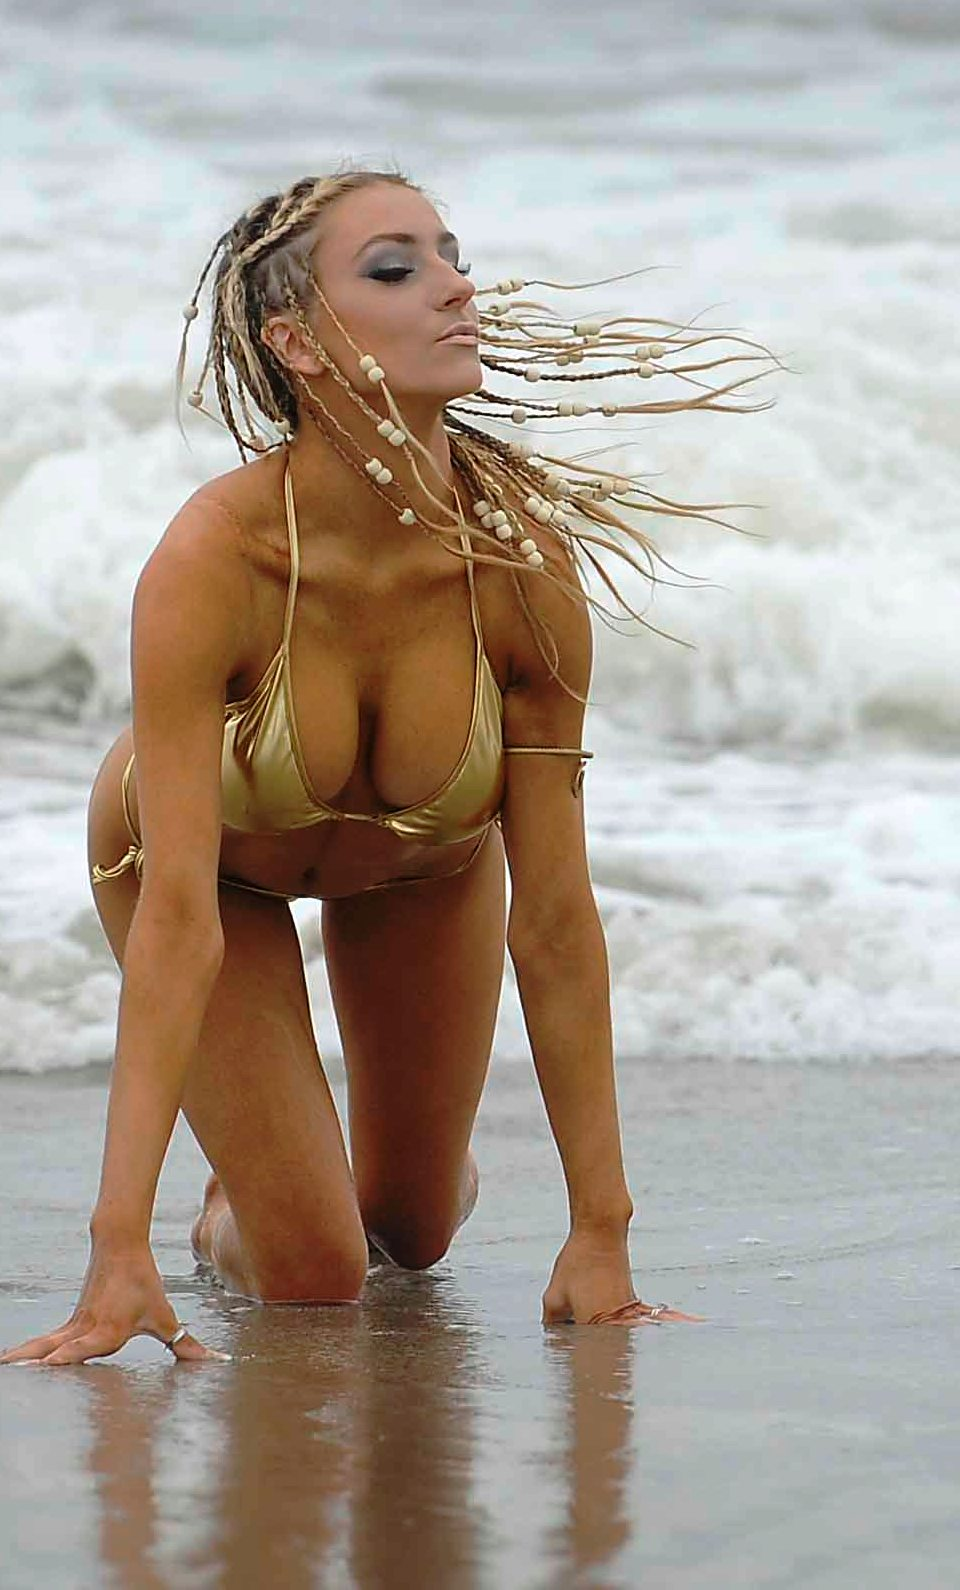 courtney stodden bikini malfunction slip